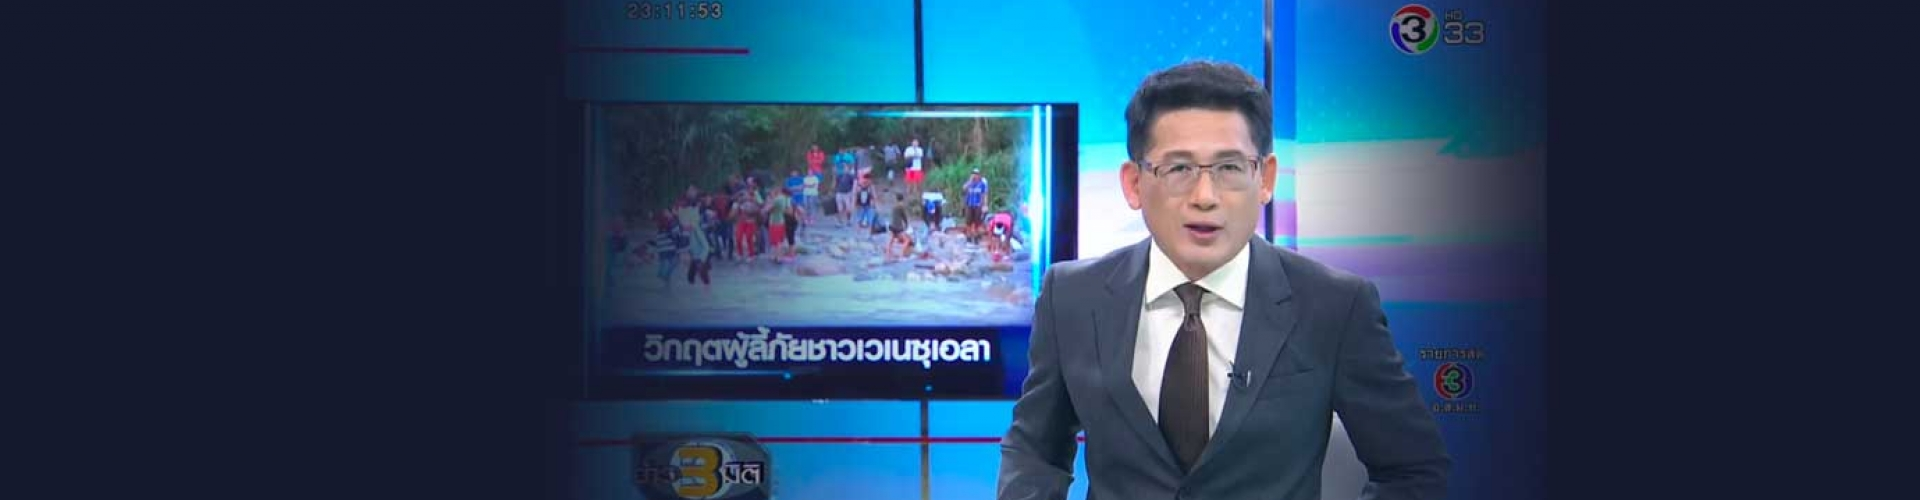 Venezuela Crisis: 3 Miti News team is on the ground with UNHCR in Colombia